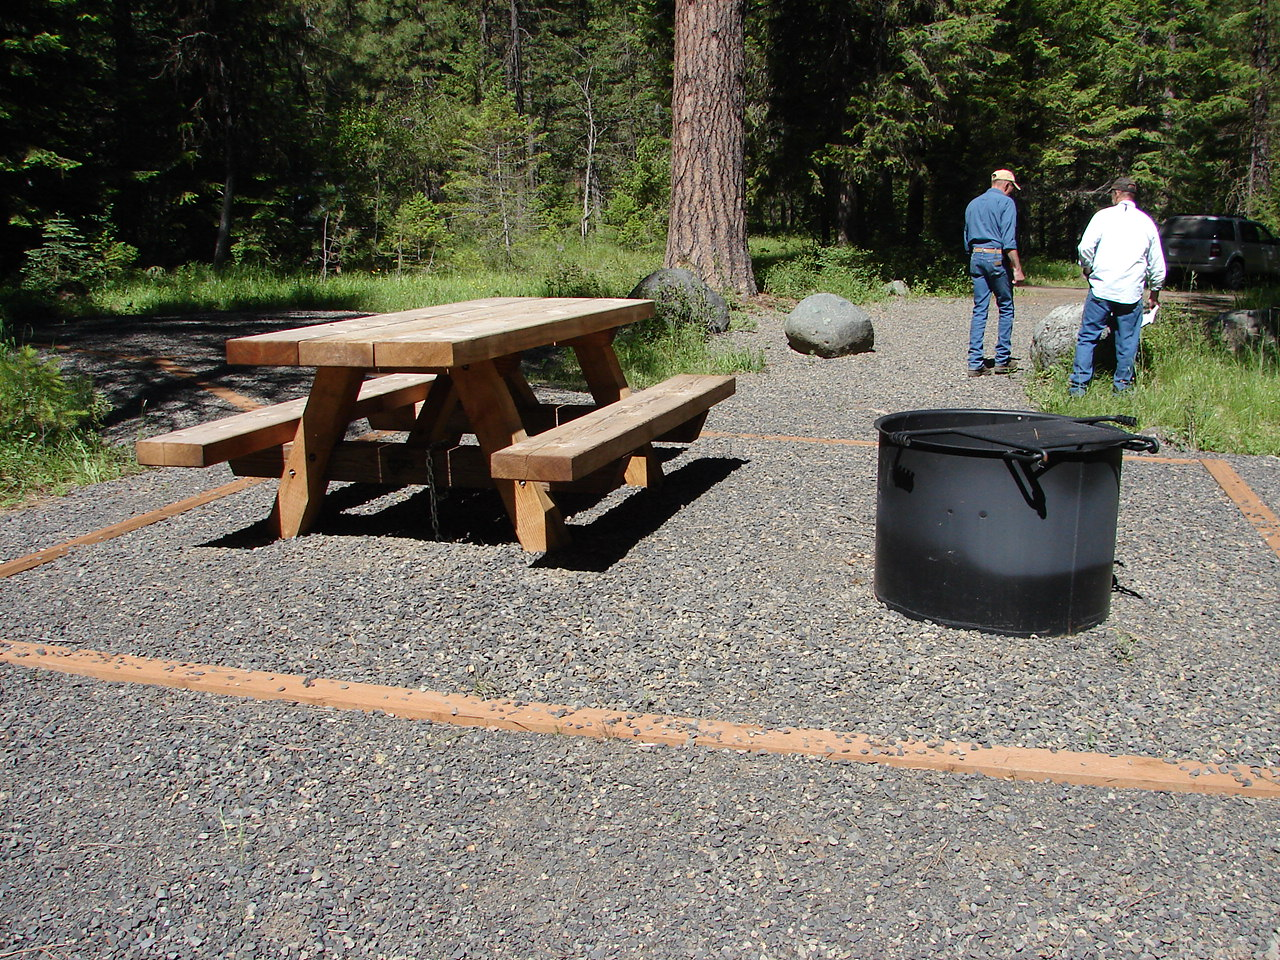 Accessibkle campsites at Blackhorse Campground